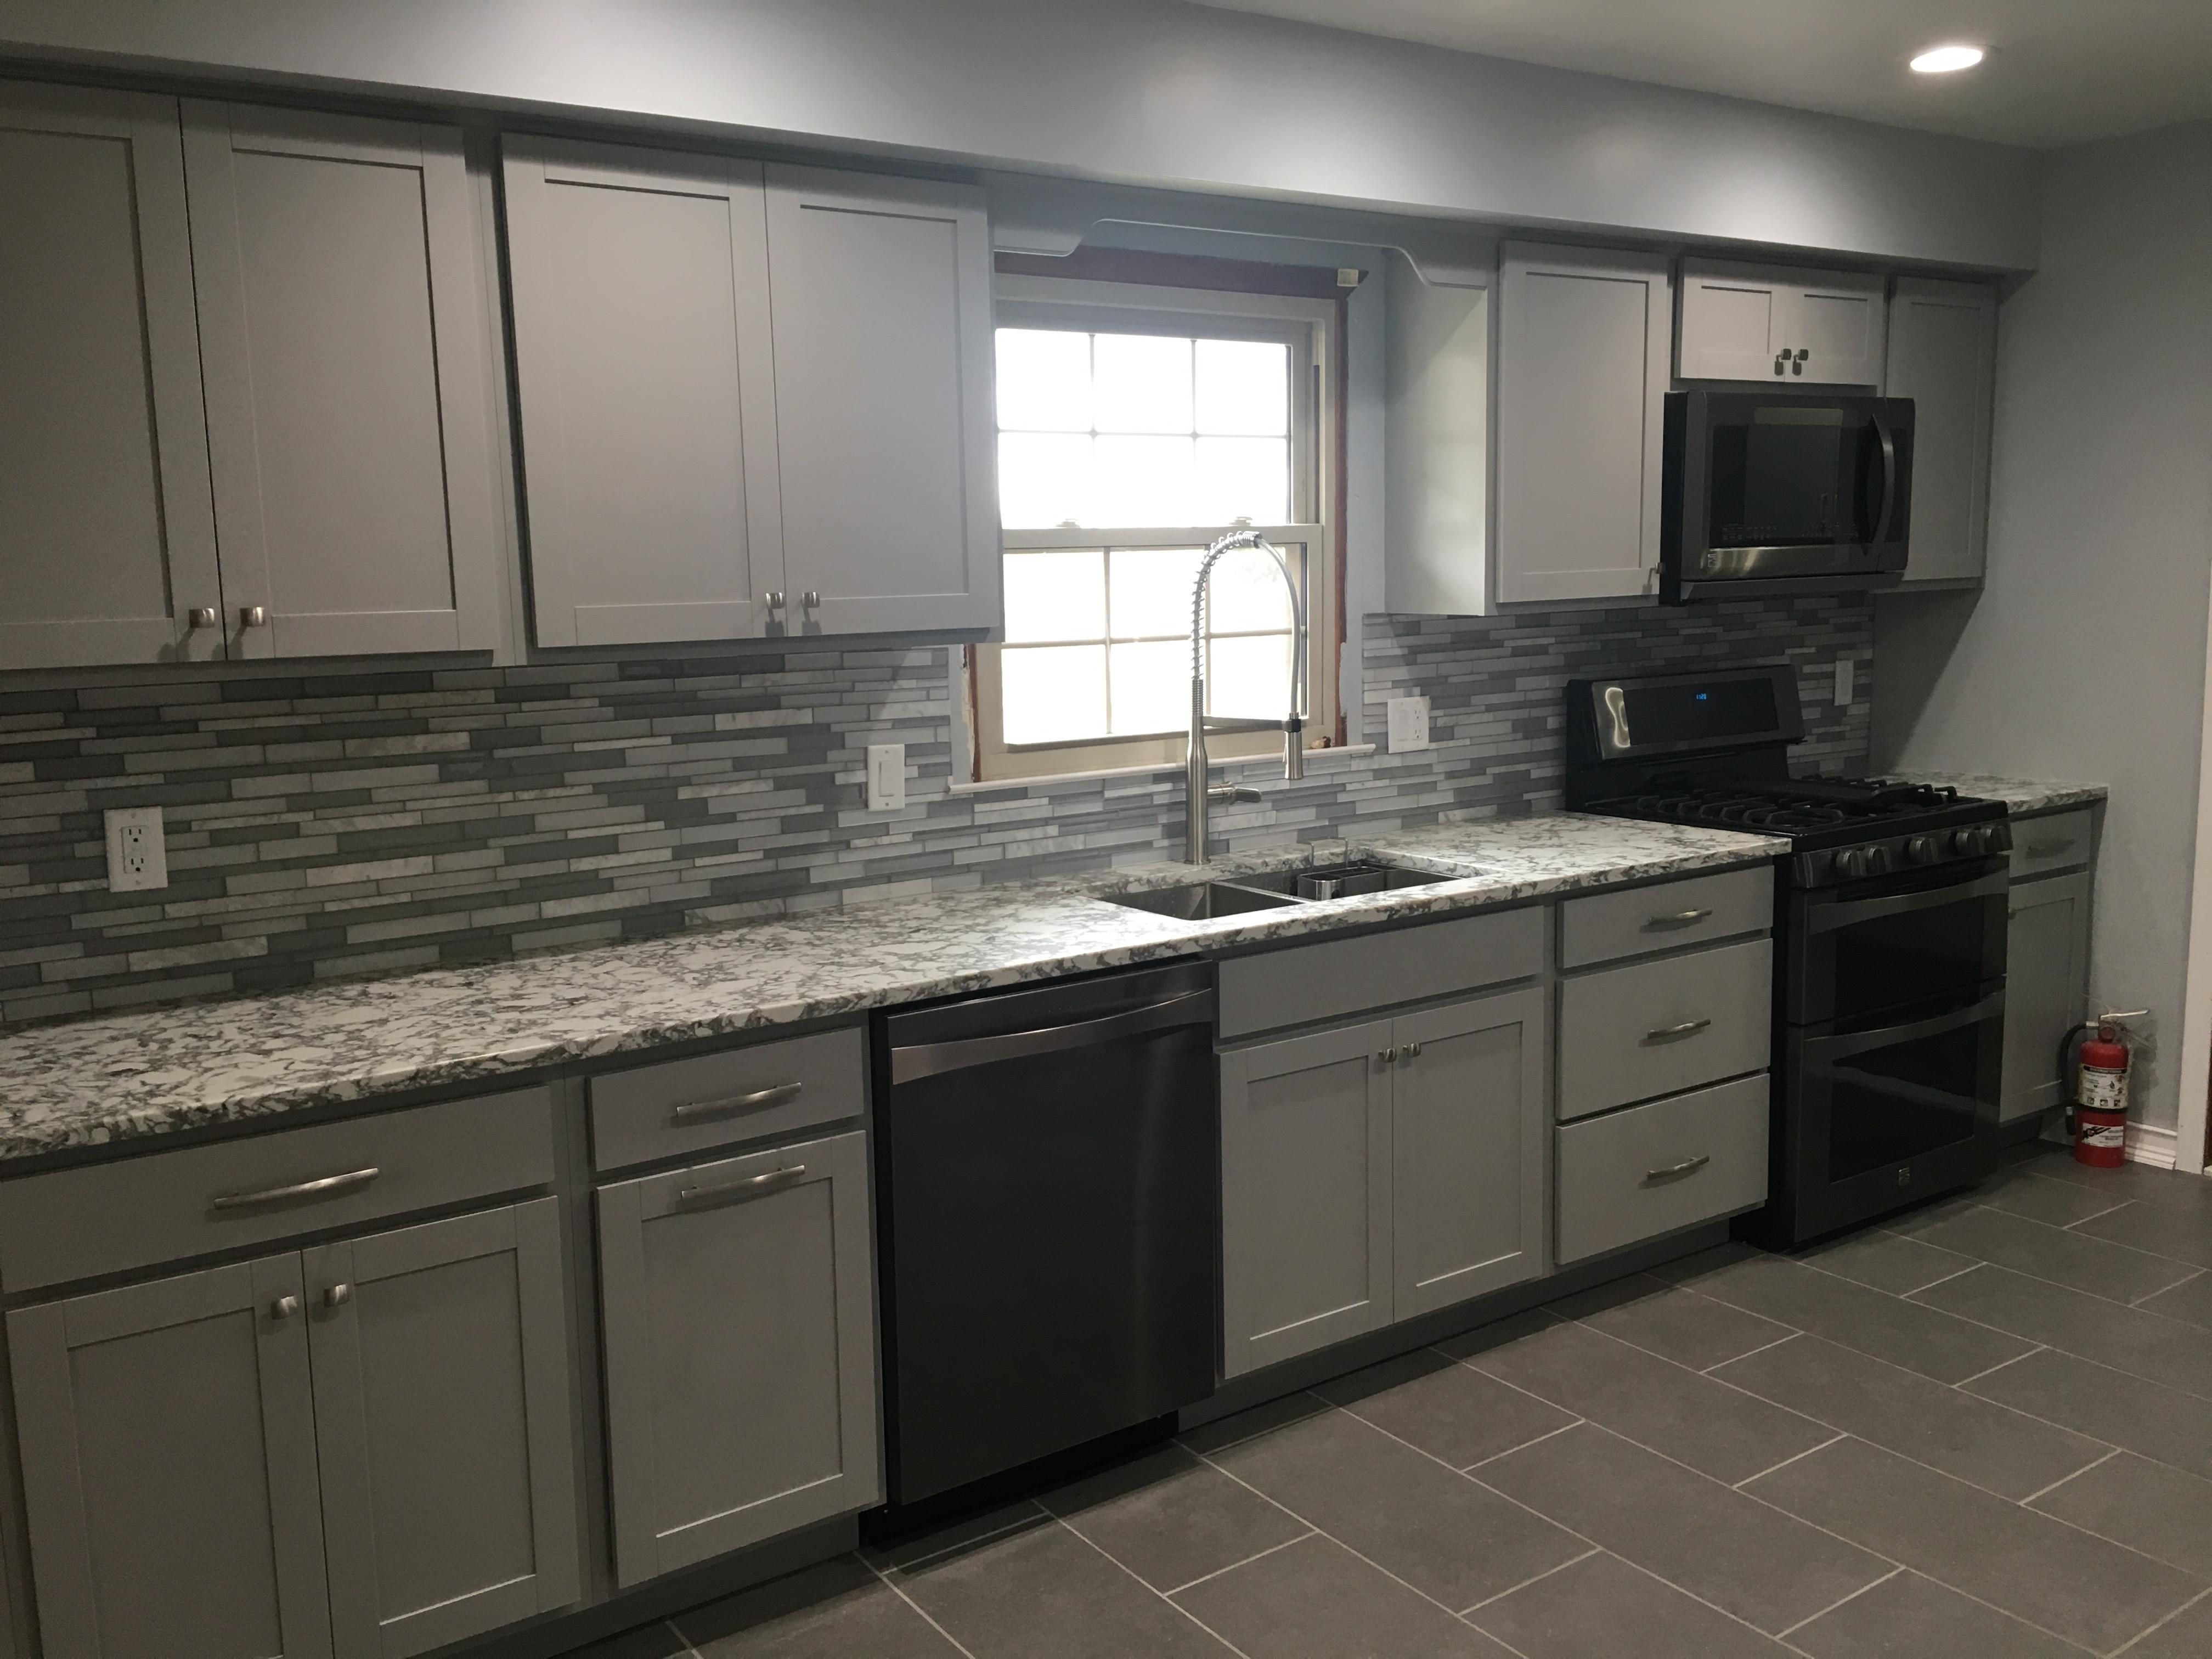 Conrad Homes strives to bring updated kitchens to every customer that needs them. We are based in Hagerstown, MD and have completed countless projects for homeowners and businesses in Washington County. We've also serviced surrounding areas  as well in Pennsylvania, Virginia, and West Virginia, including: Greencastle, PA, Chambersburg, PA, Waynesboro, VA, Martinsburg, WV.